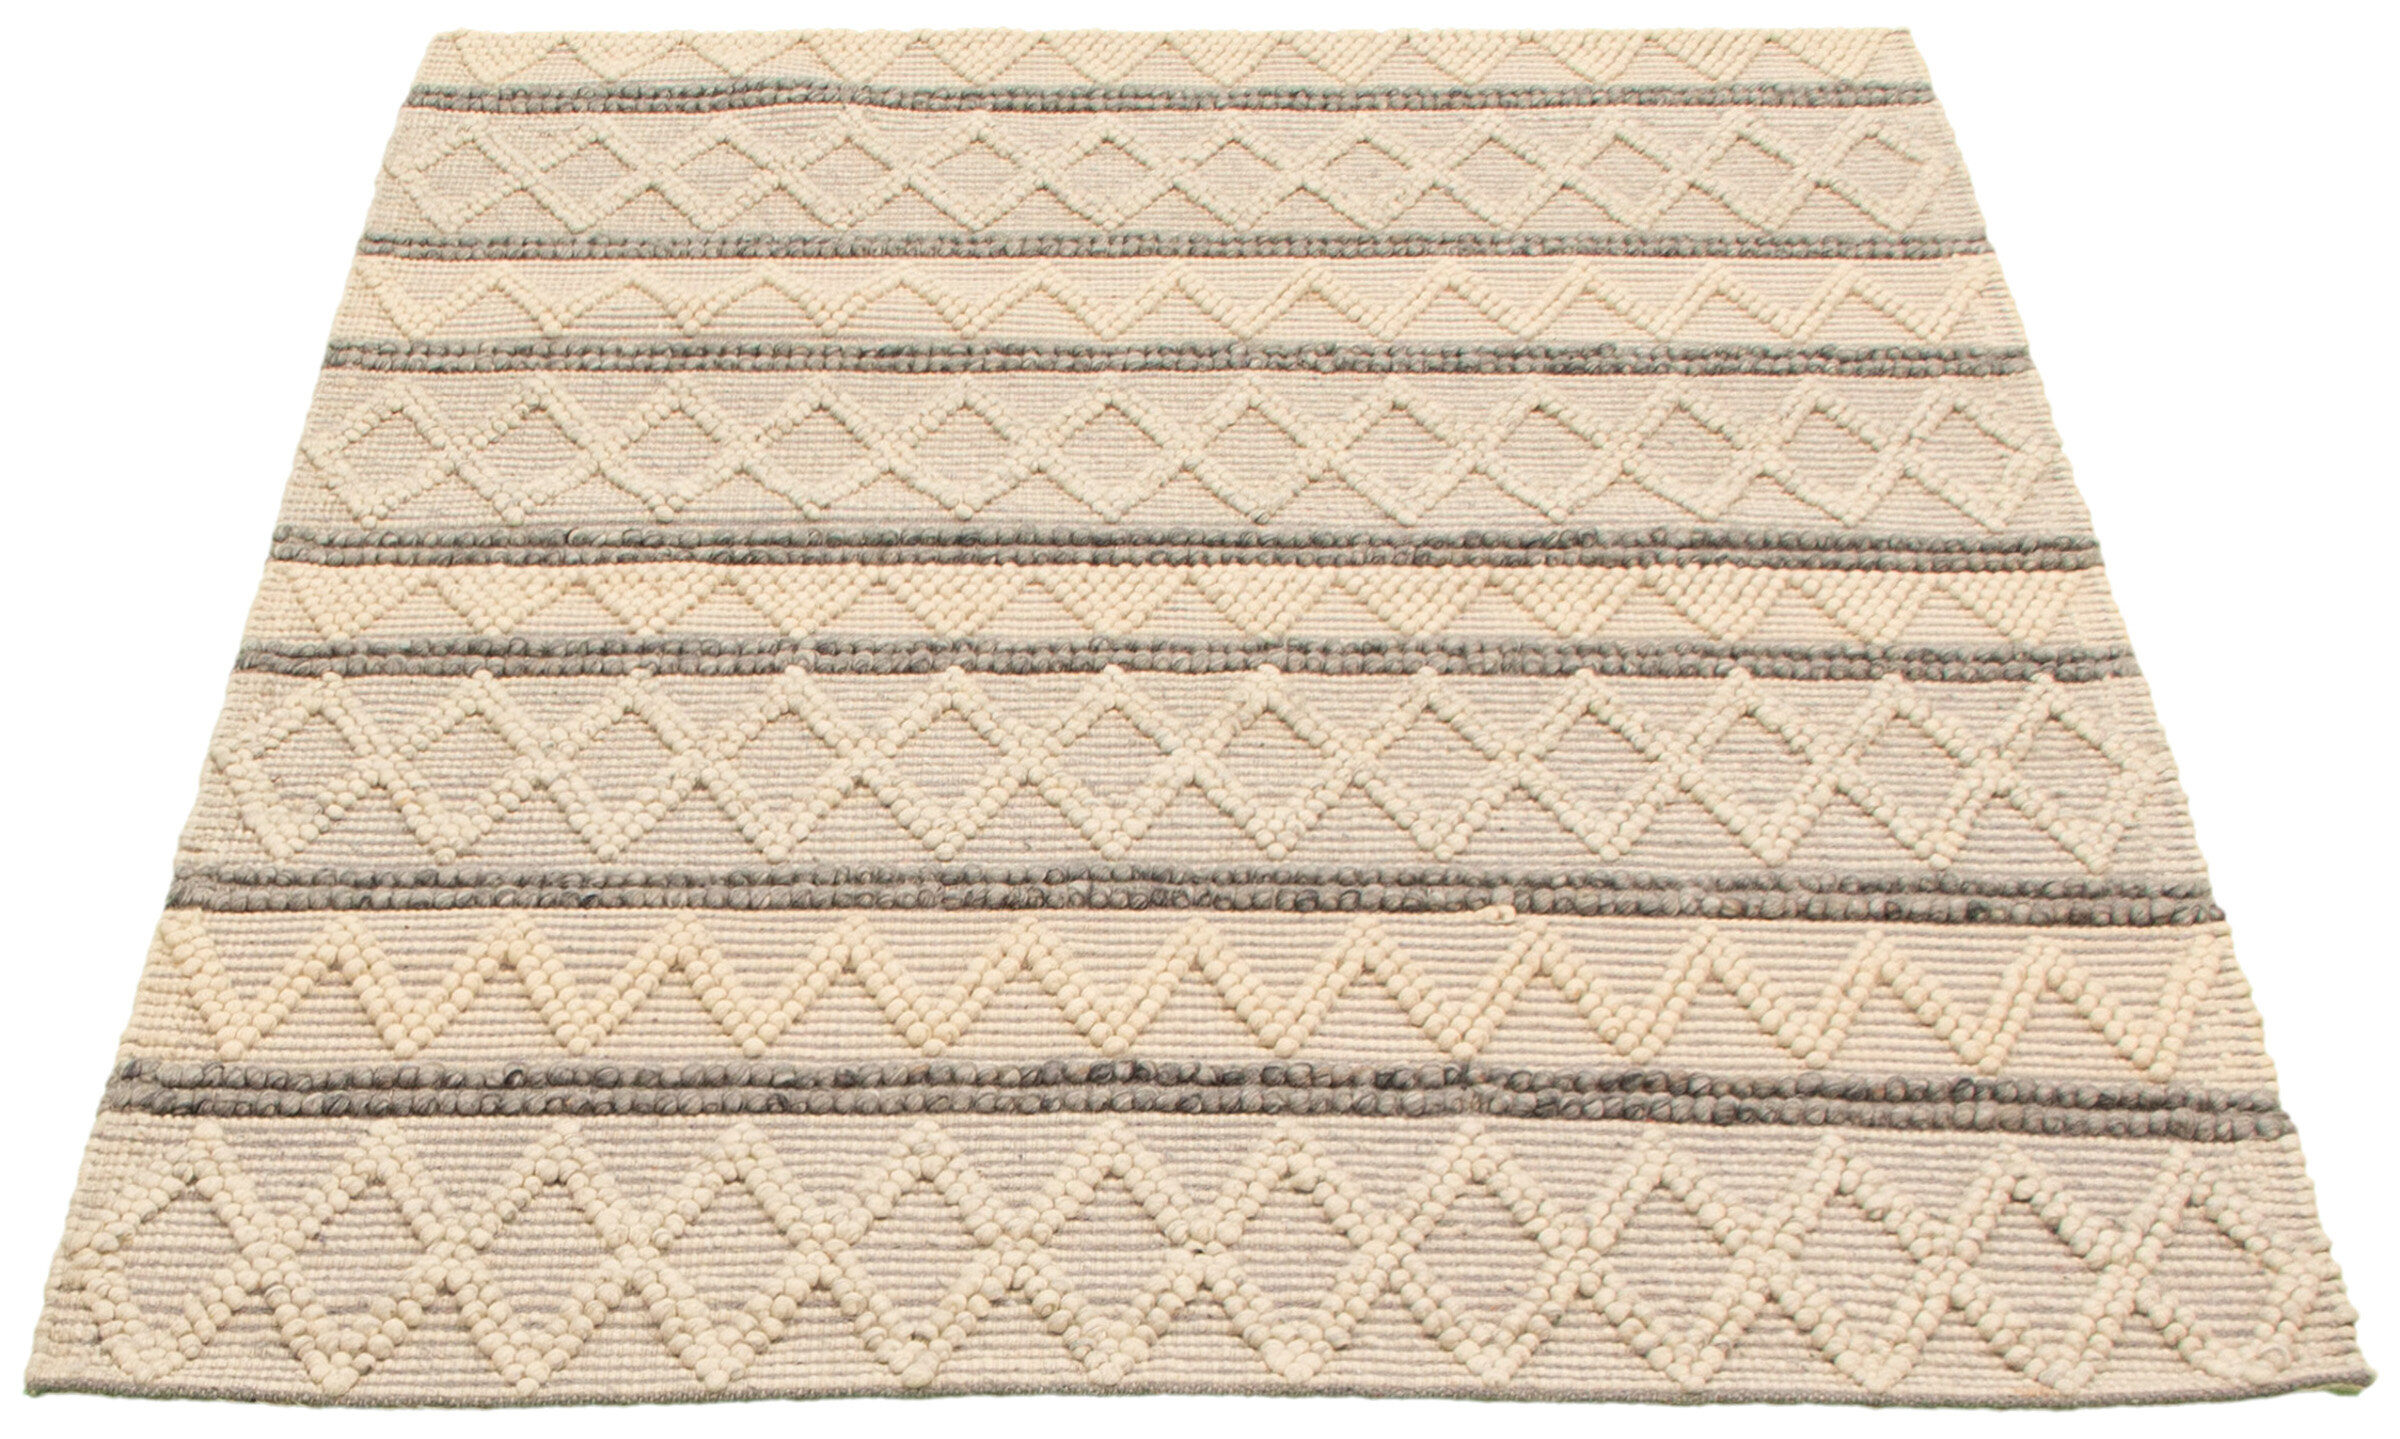 Dakota Fields Geometric Hand Braided Wool Cream Area Rug Wayfair